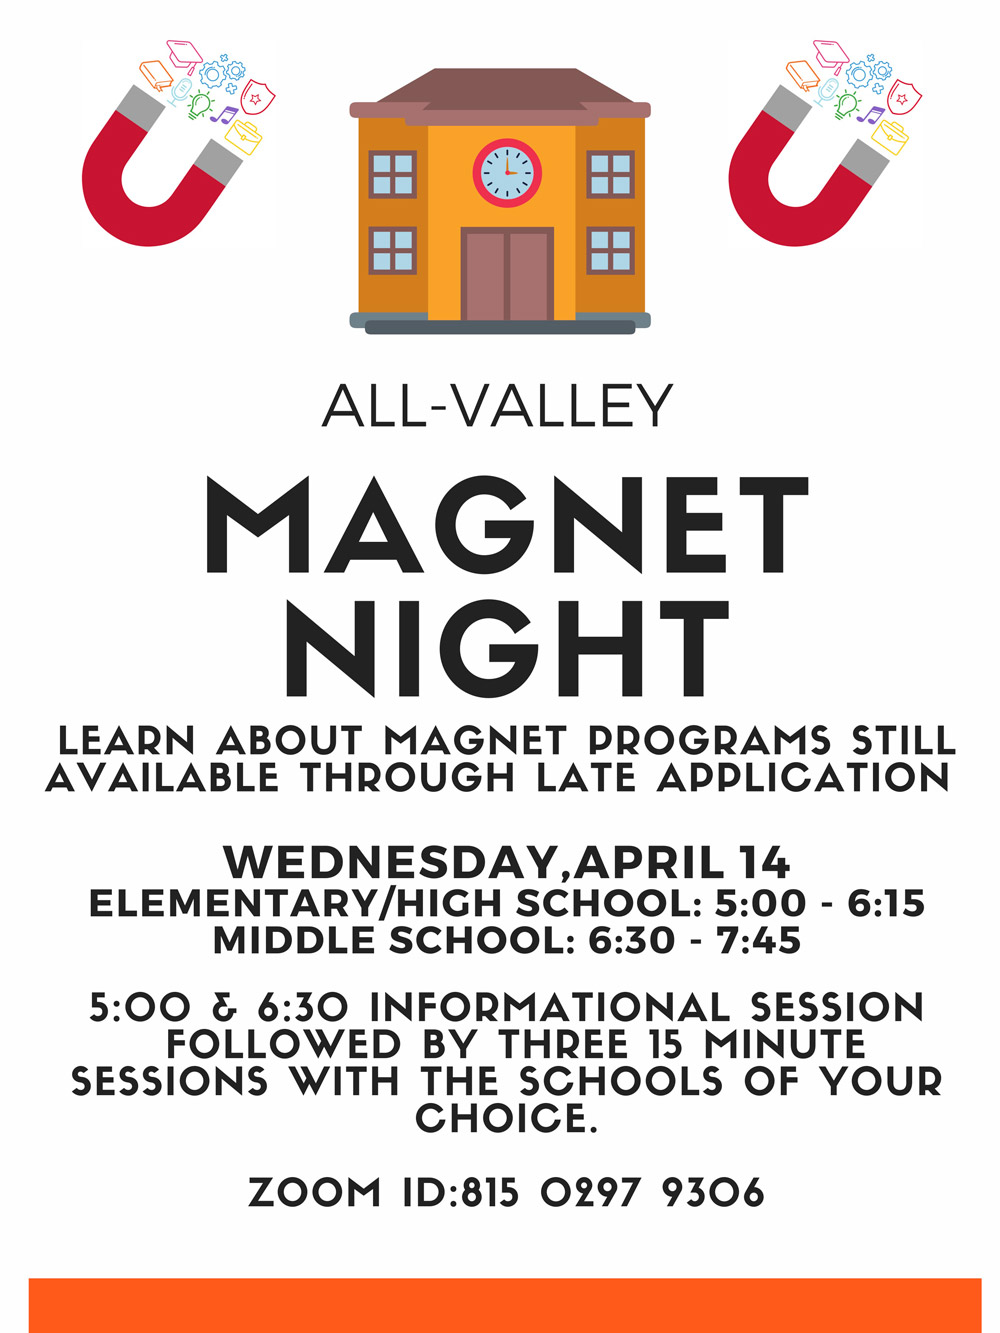 All Valley Magnet Night